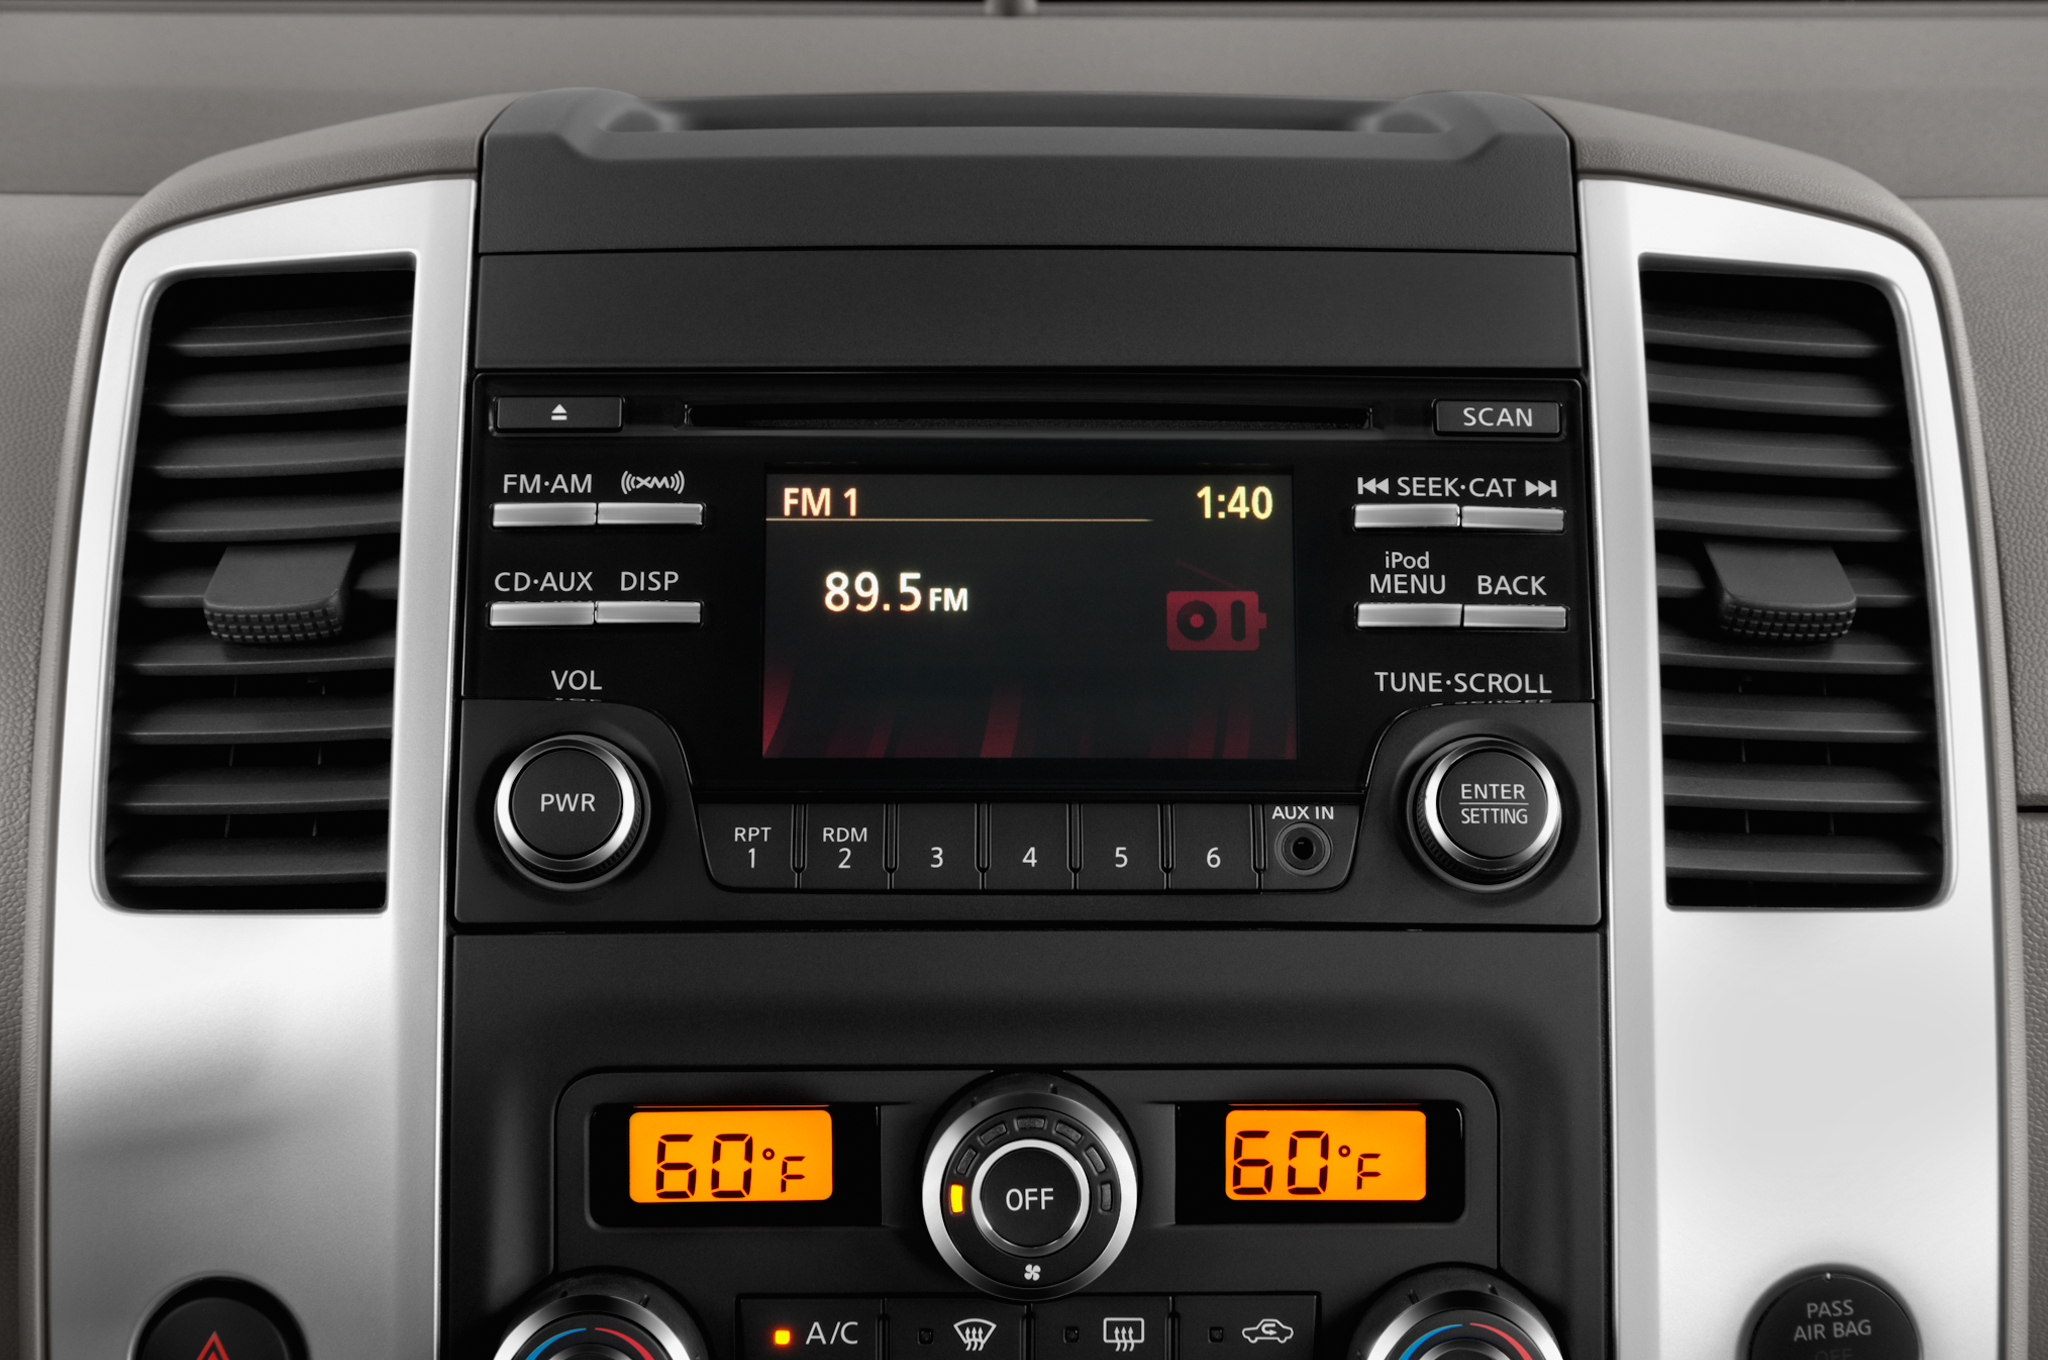 2007 Nissan Xterra Radio Wiring Sony Cdx Gt56uiw Wiring Diagram For Wiring Diagram Schematics